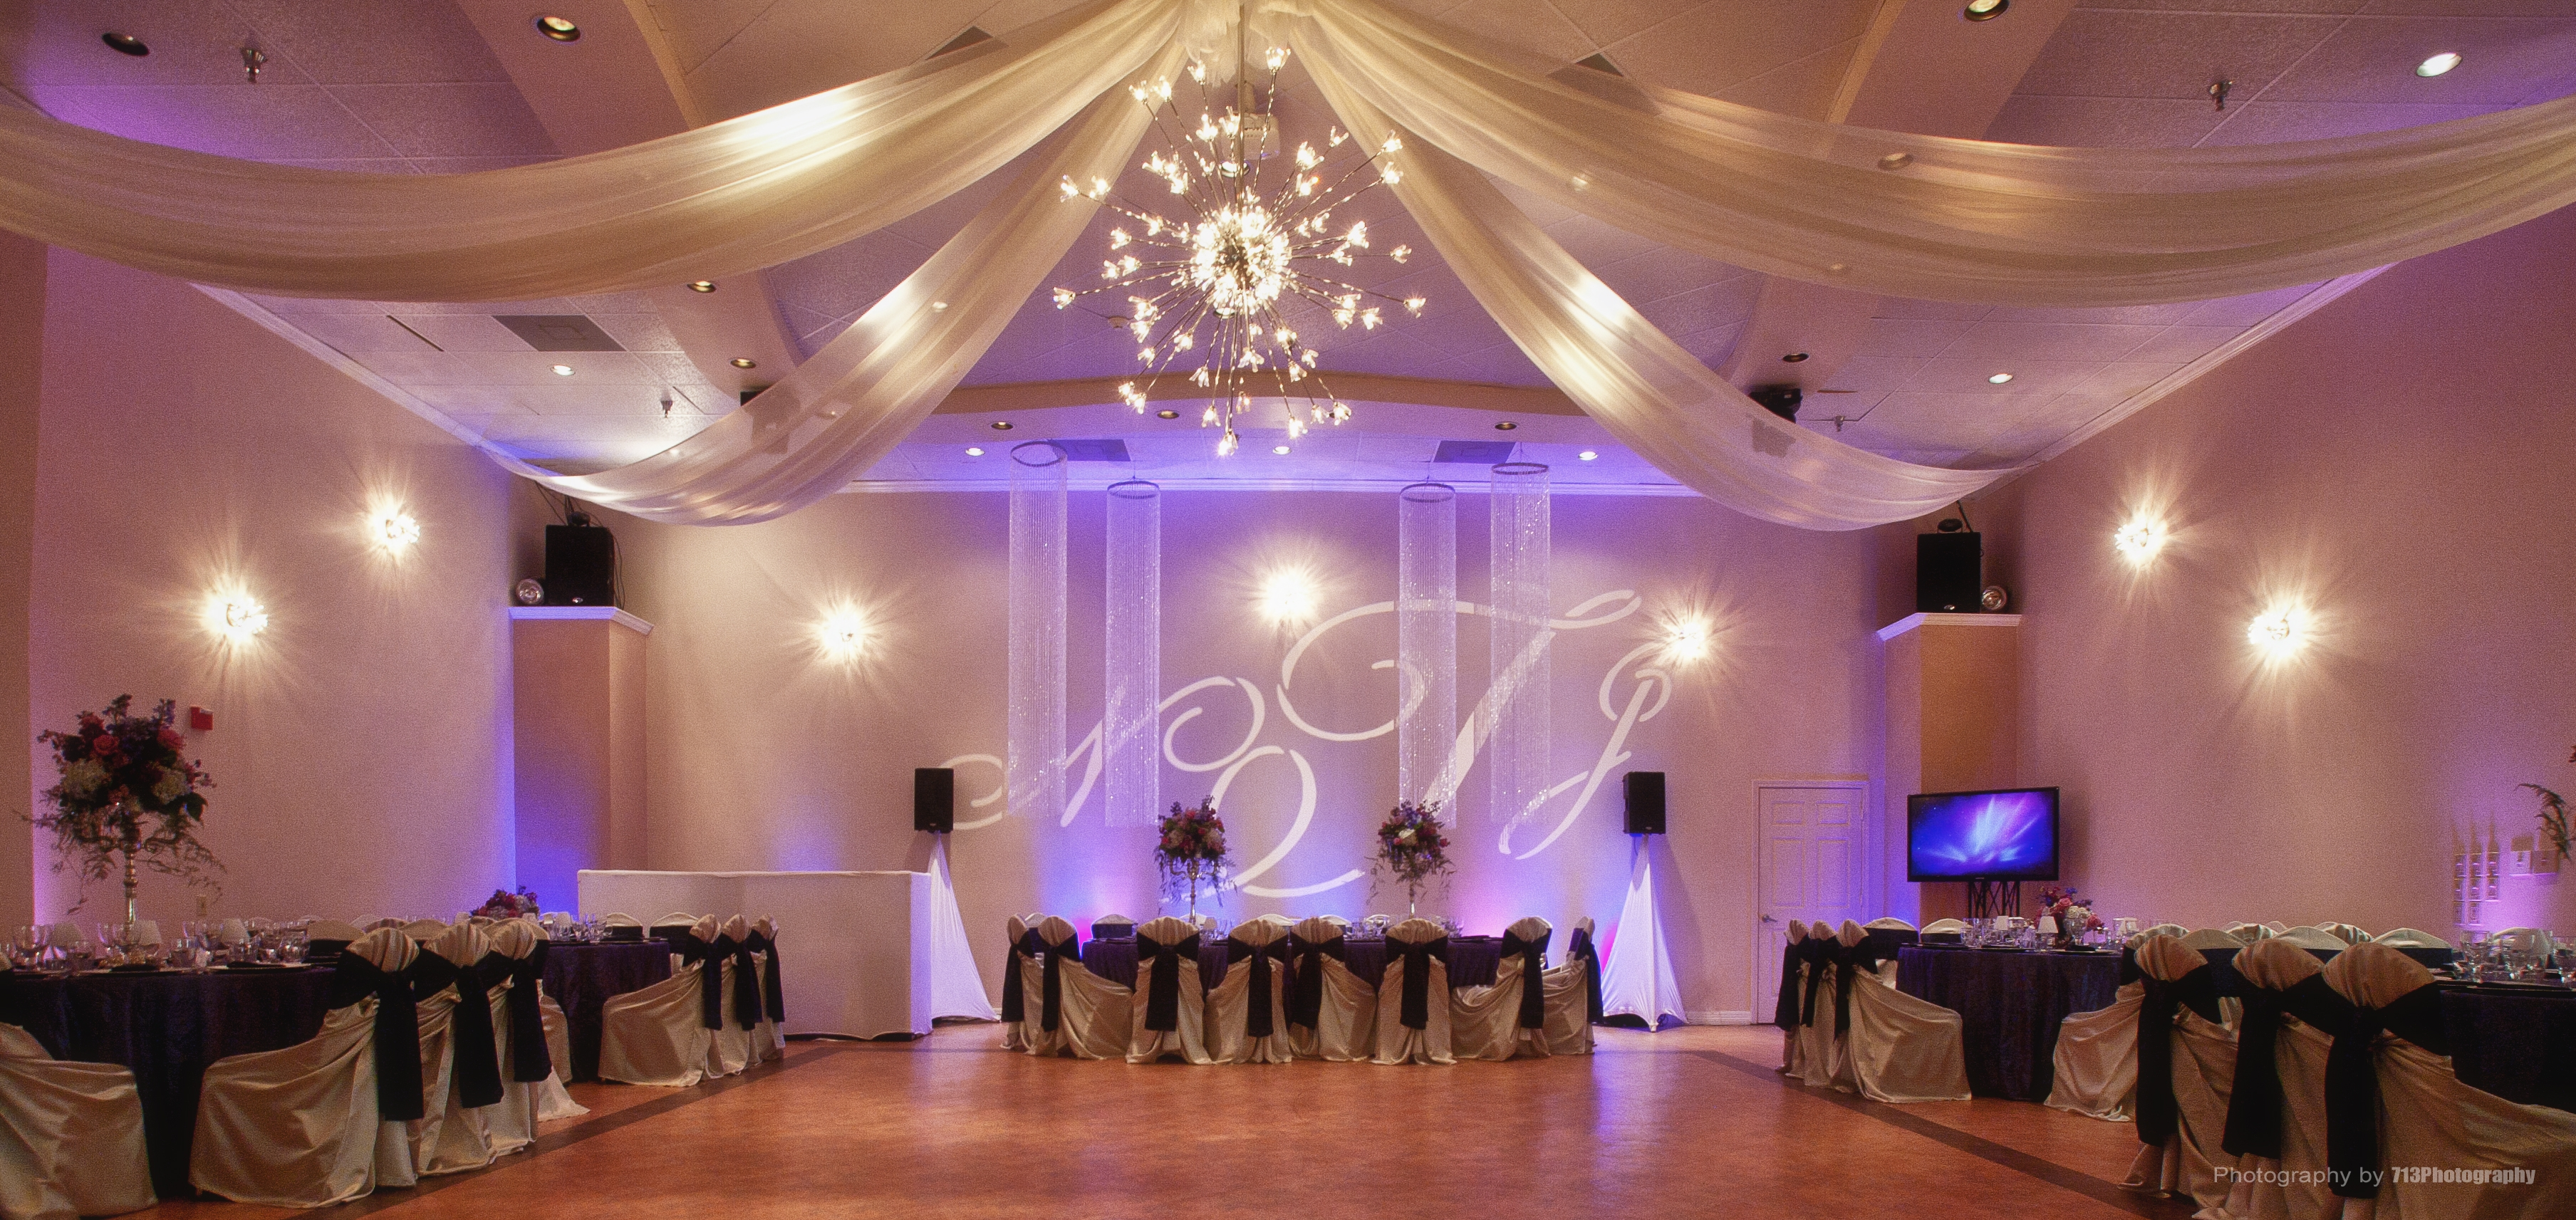 Houston event venue demers wedding quince demers banquet for Ball room decoration